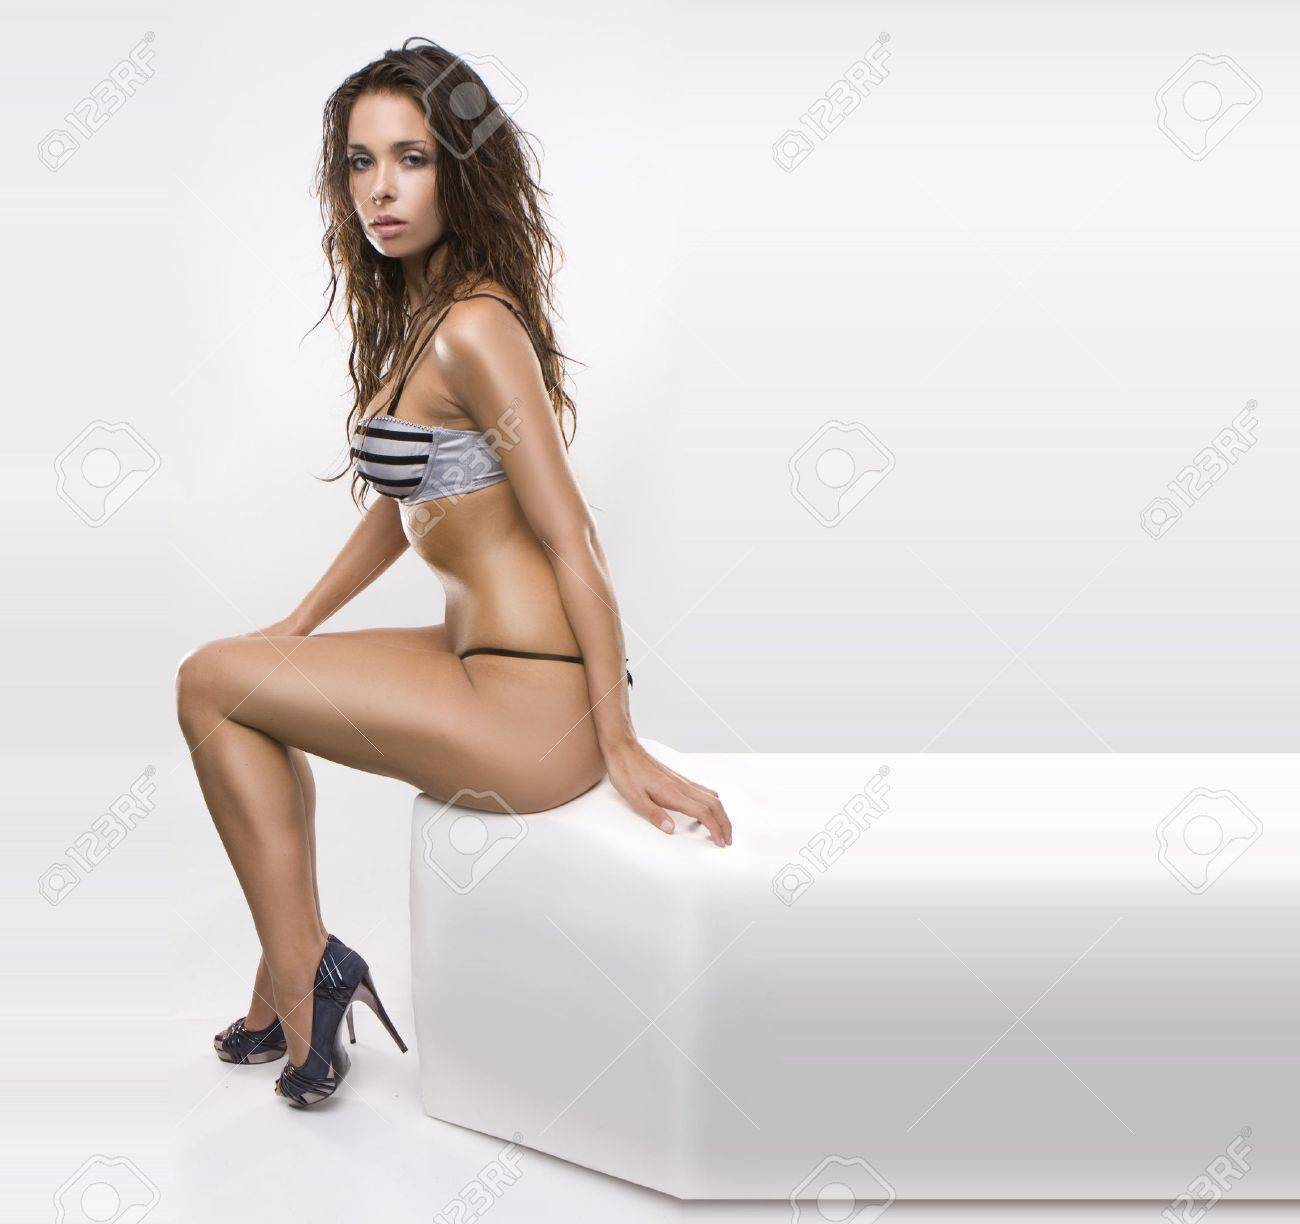 sexy glamour model wearing lingerie and heels sitting on white isolated box, Stock Photo - 5303018